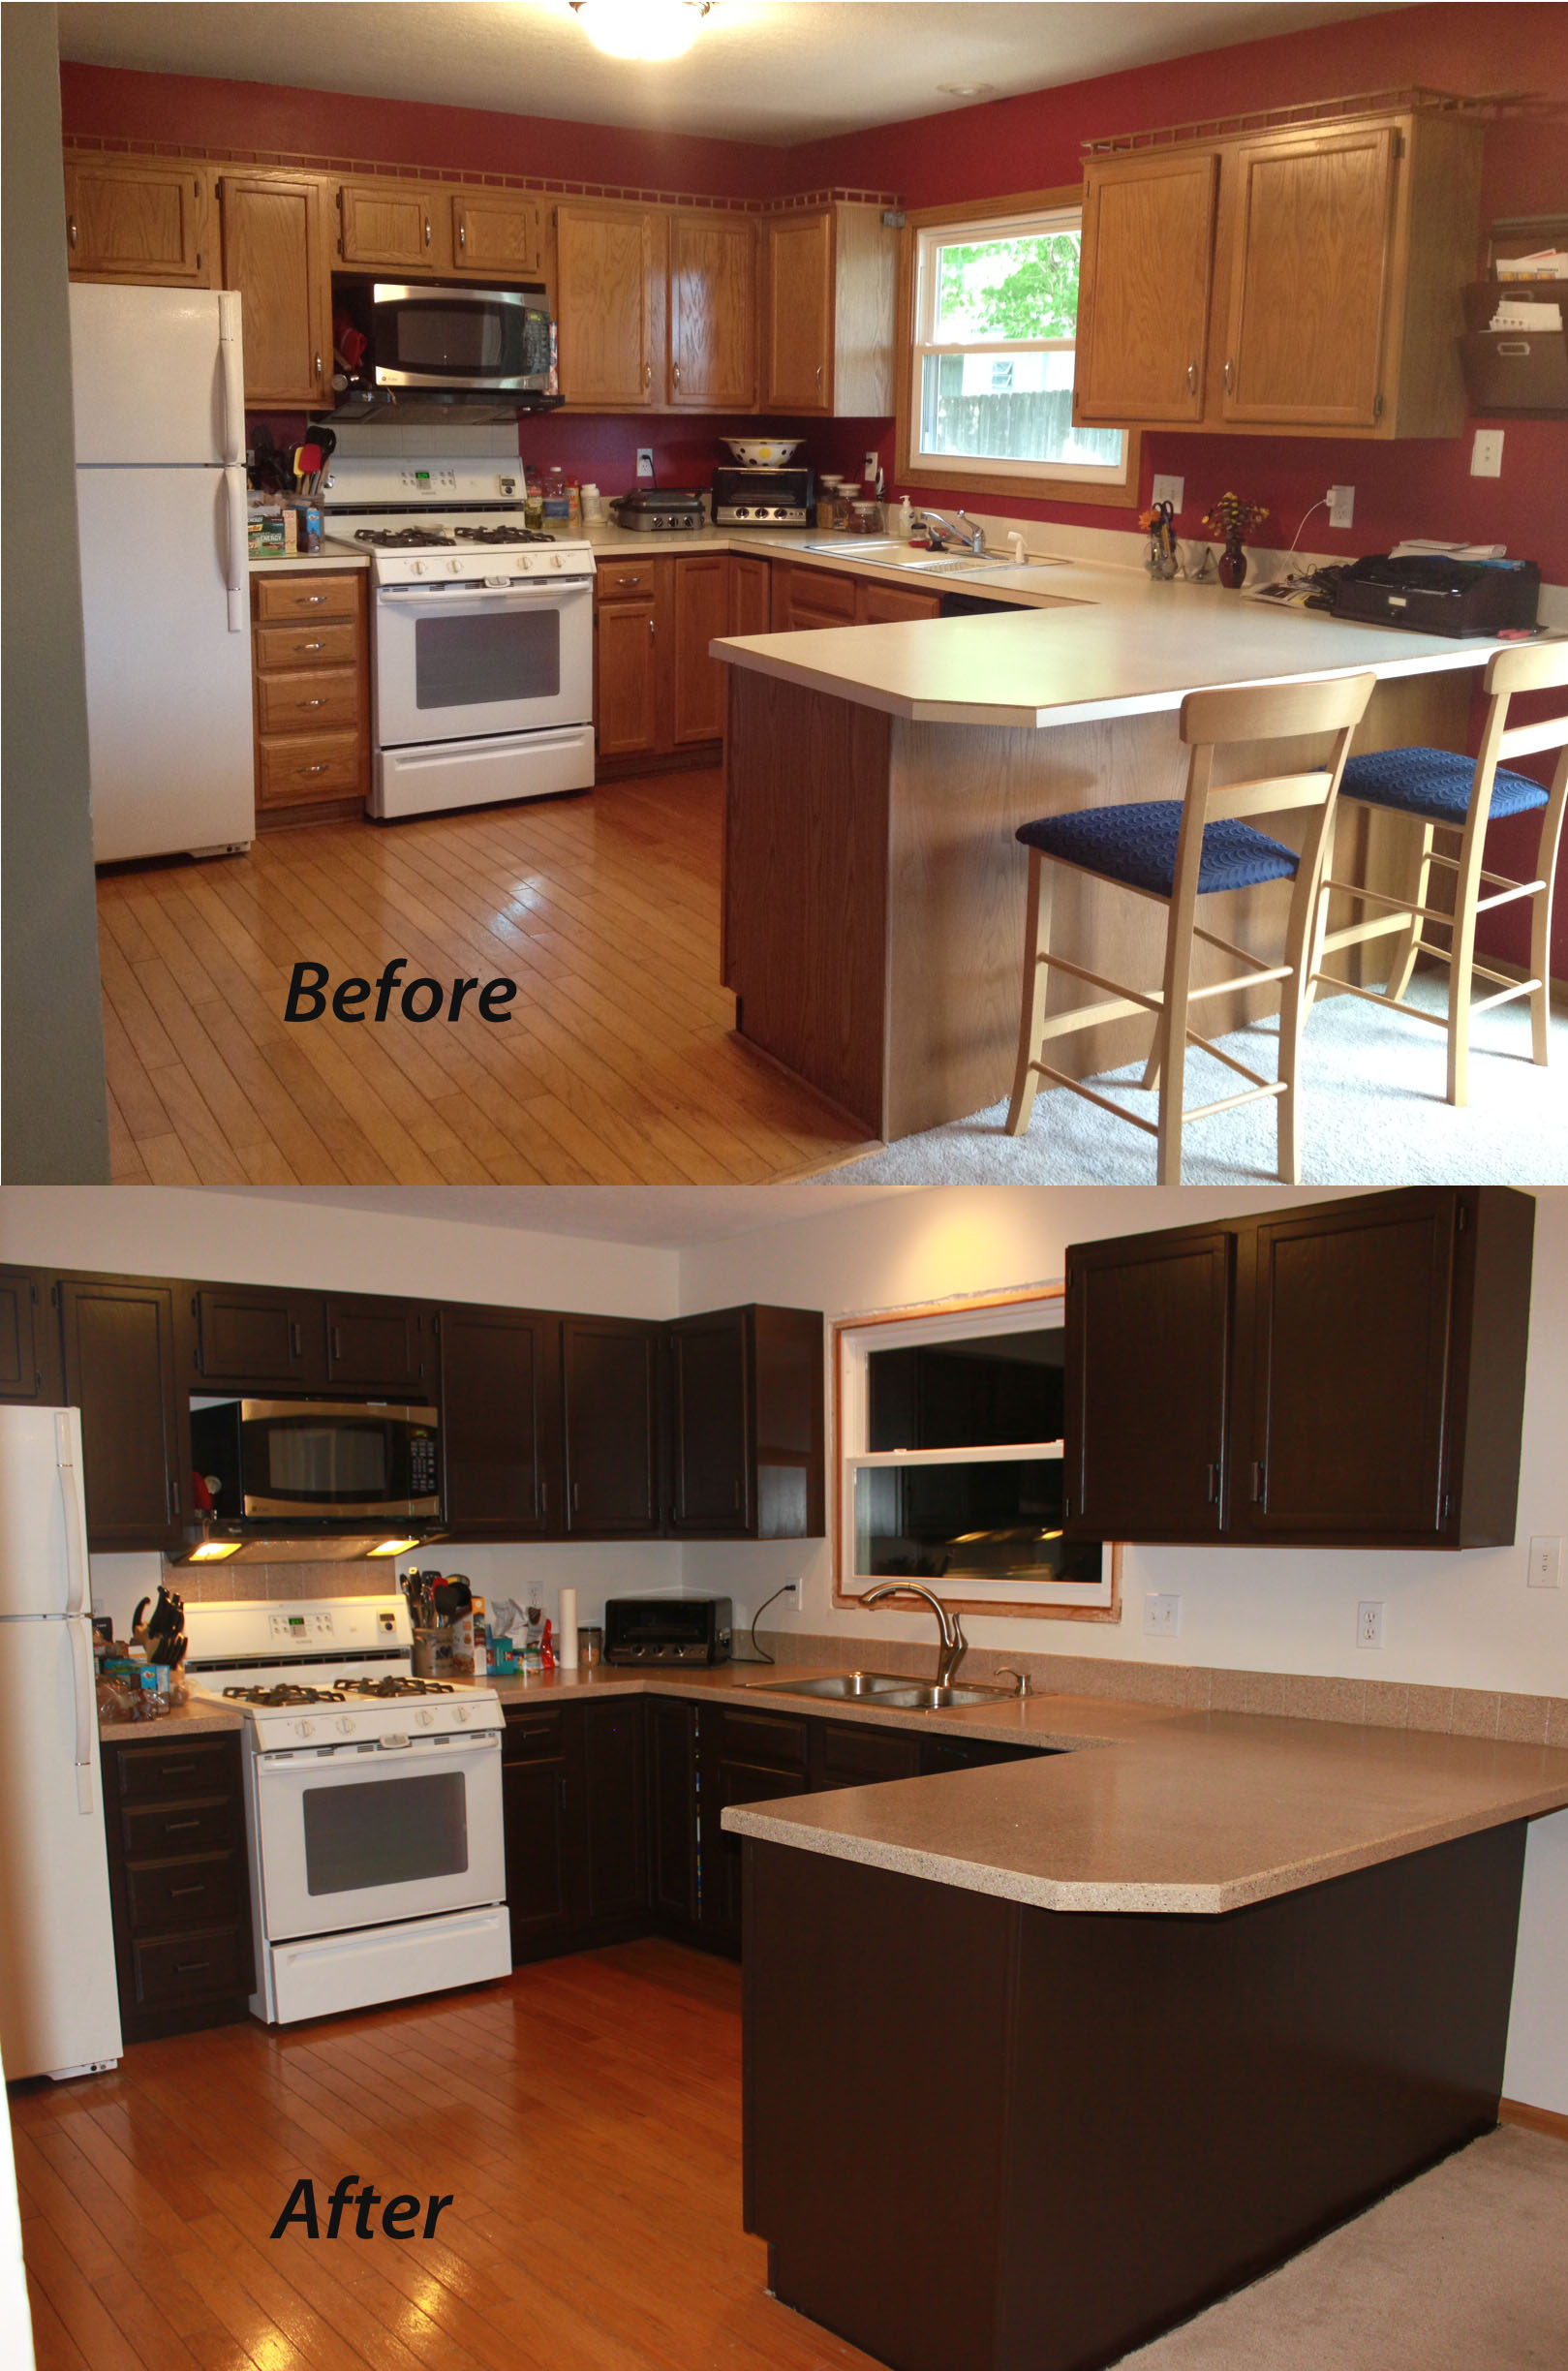 Painting Kitchen Cabinets Espresso Brown painting kitchen cabinets - sometimes homemade